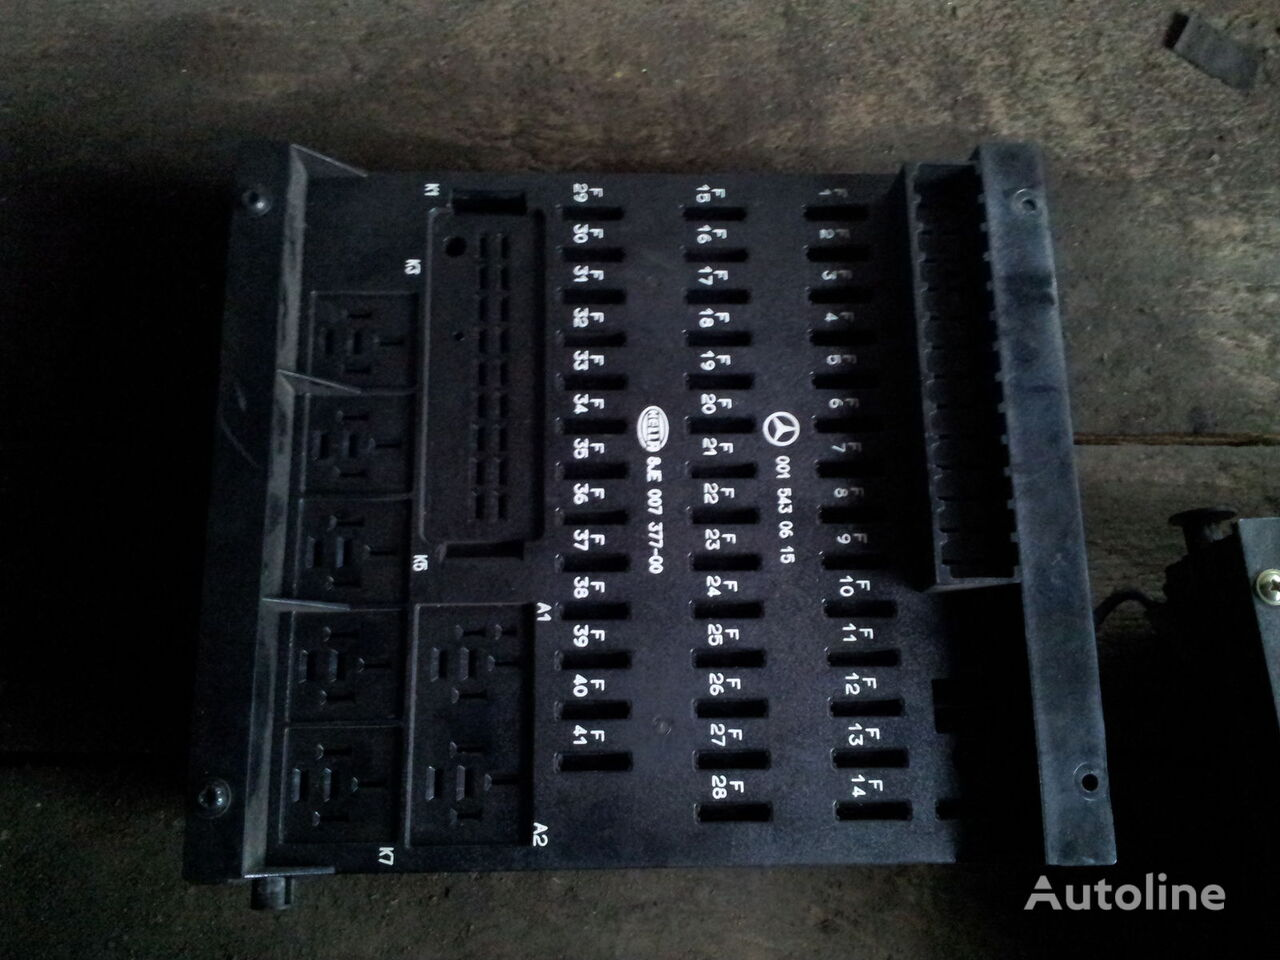 spare part control unitMERCEDES BENZ fuse boks central electric control unit 1_big 17091513124451257000 mercedes benz actros fuse box cover parts numbers mercedes Mercedes E350 Fuse Chart at gsmx.co